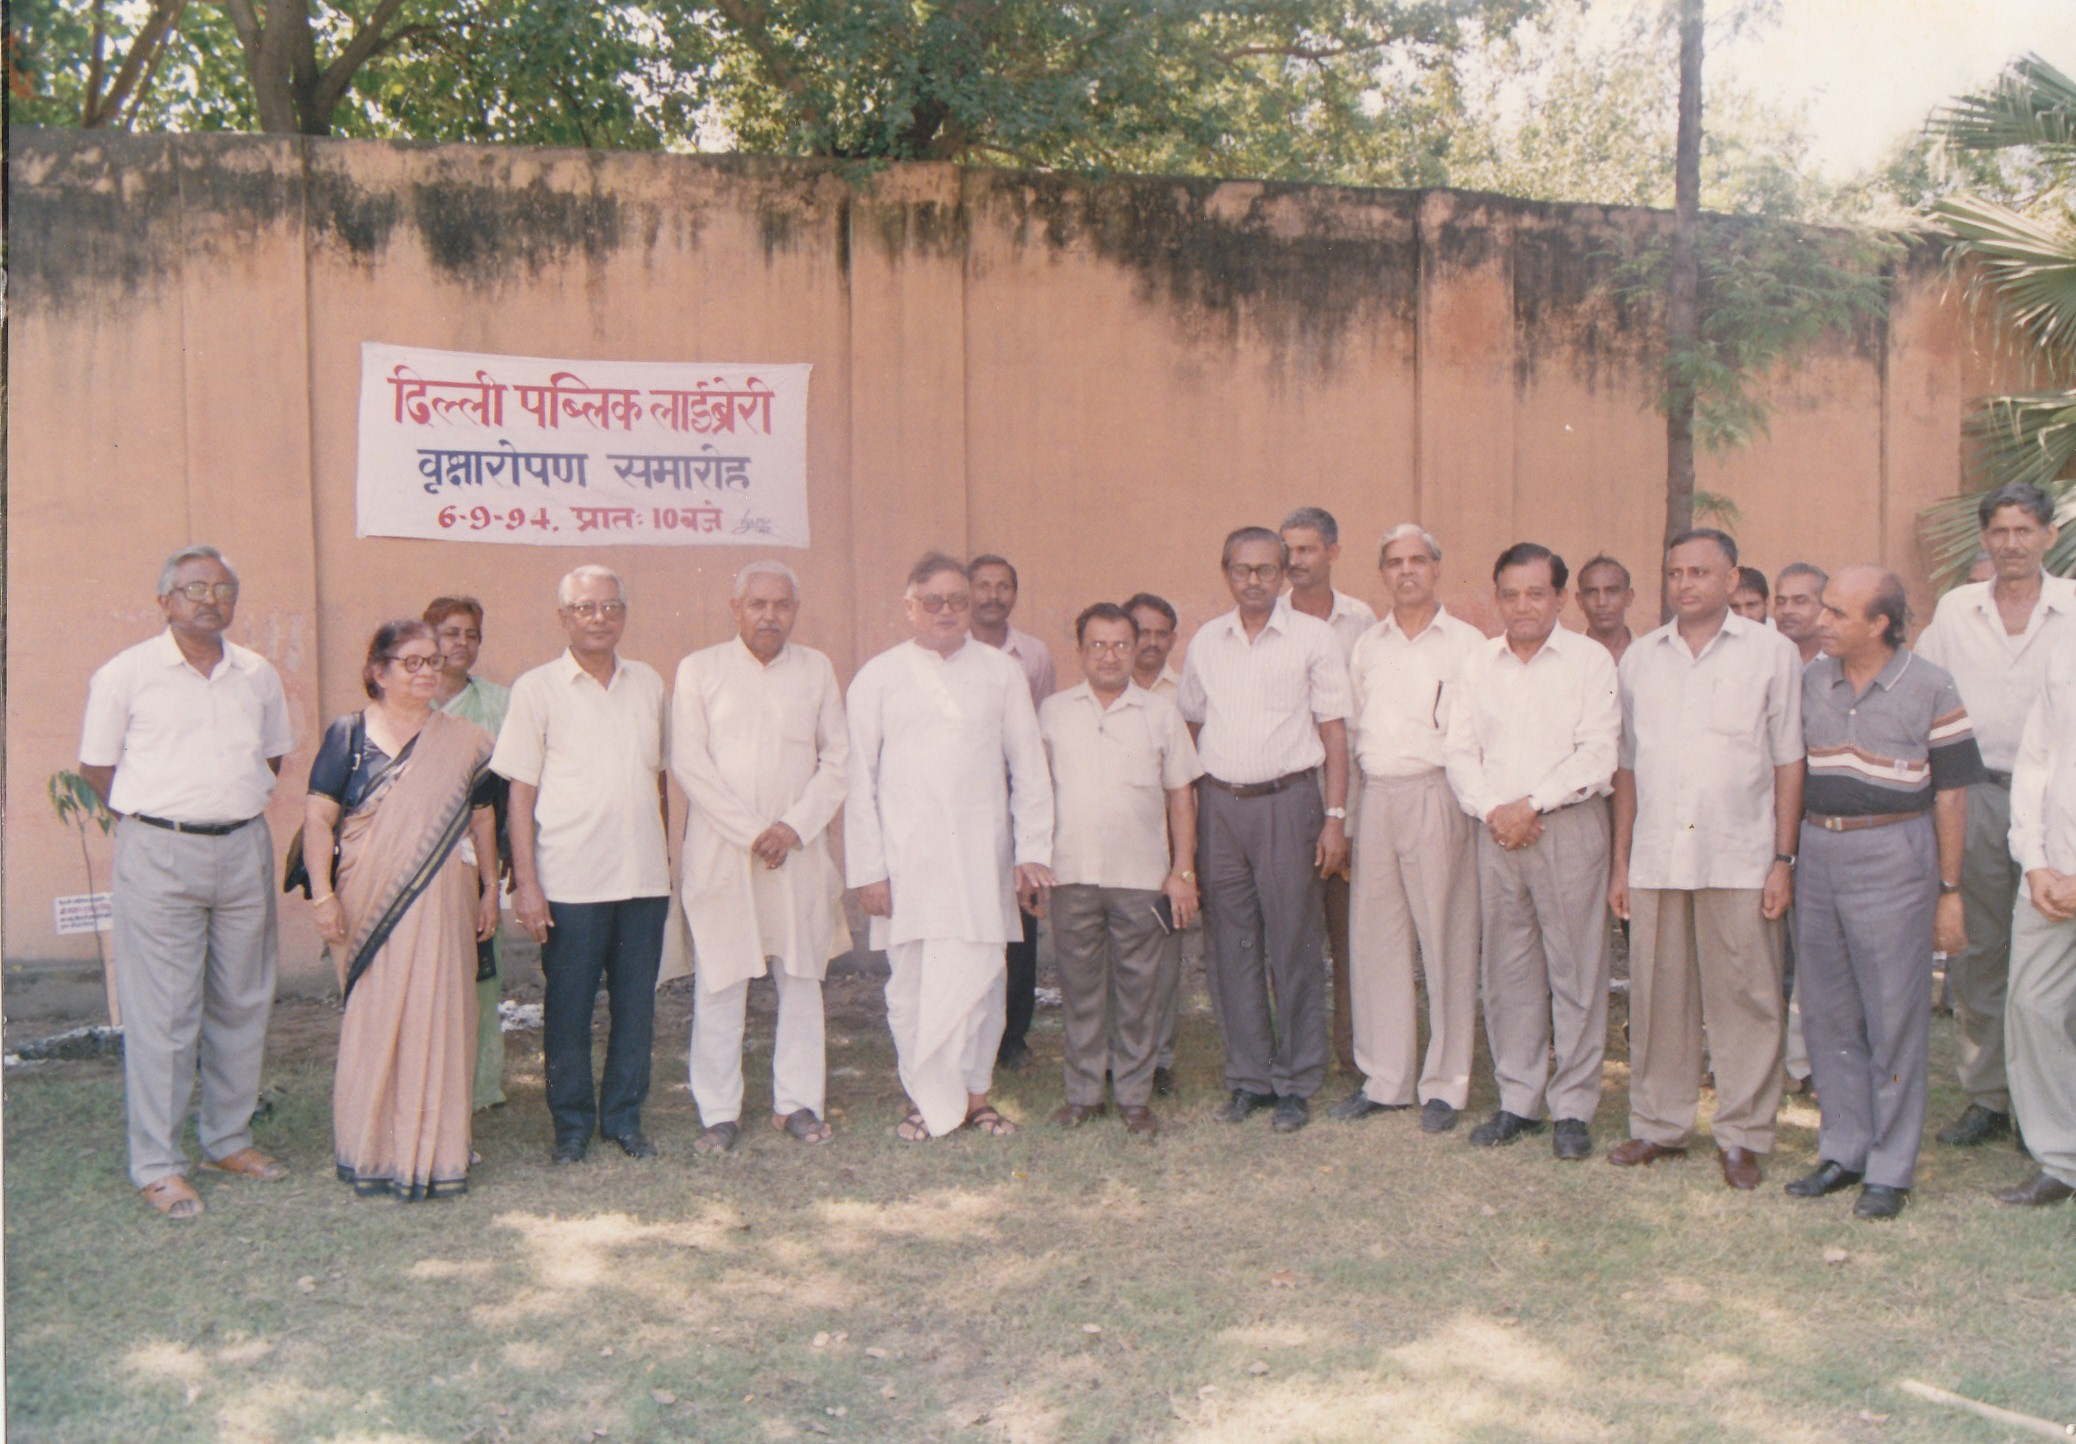 In a programme as the chairman of the Book selection committee, Delhi public library